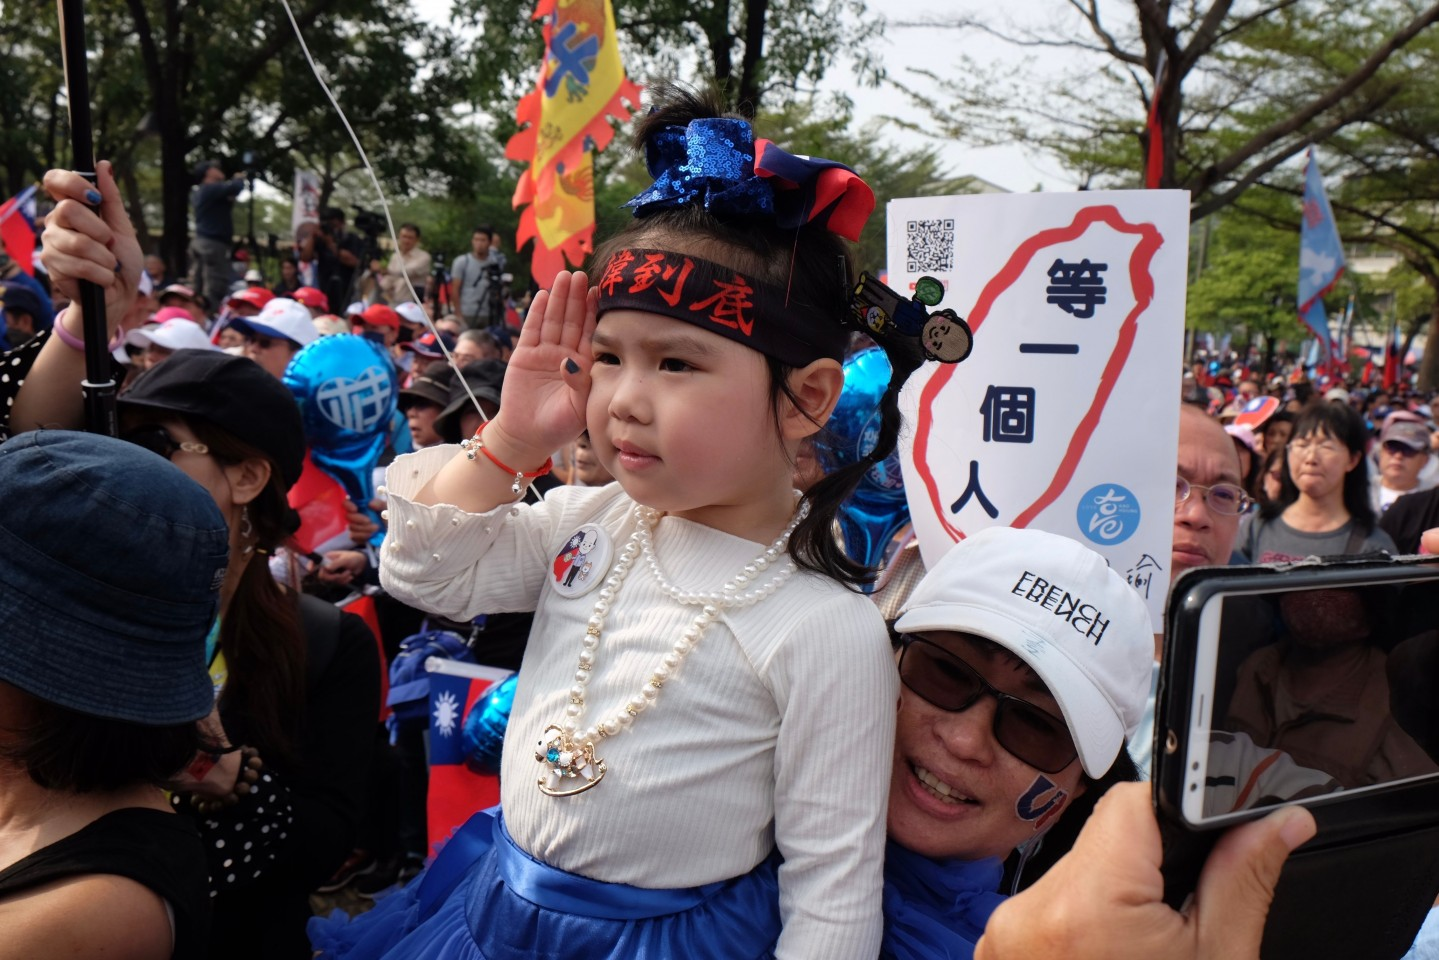 A little girl salutes during a campaign rally for Han Kuo-Yu, KMT's presidential candidate, in Tainan on January 4, 2020. (Sam Yeh/AFP)